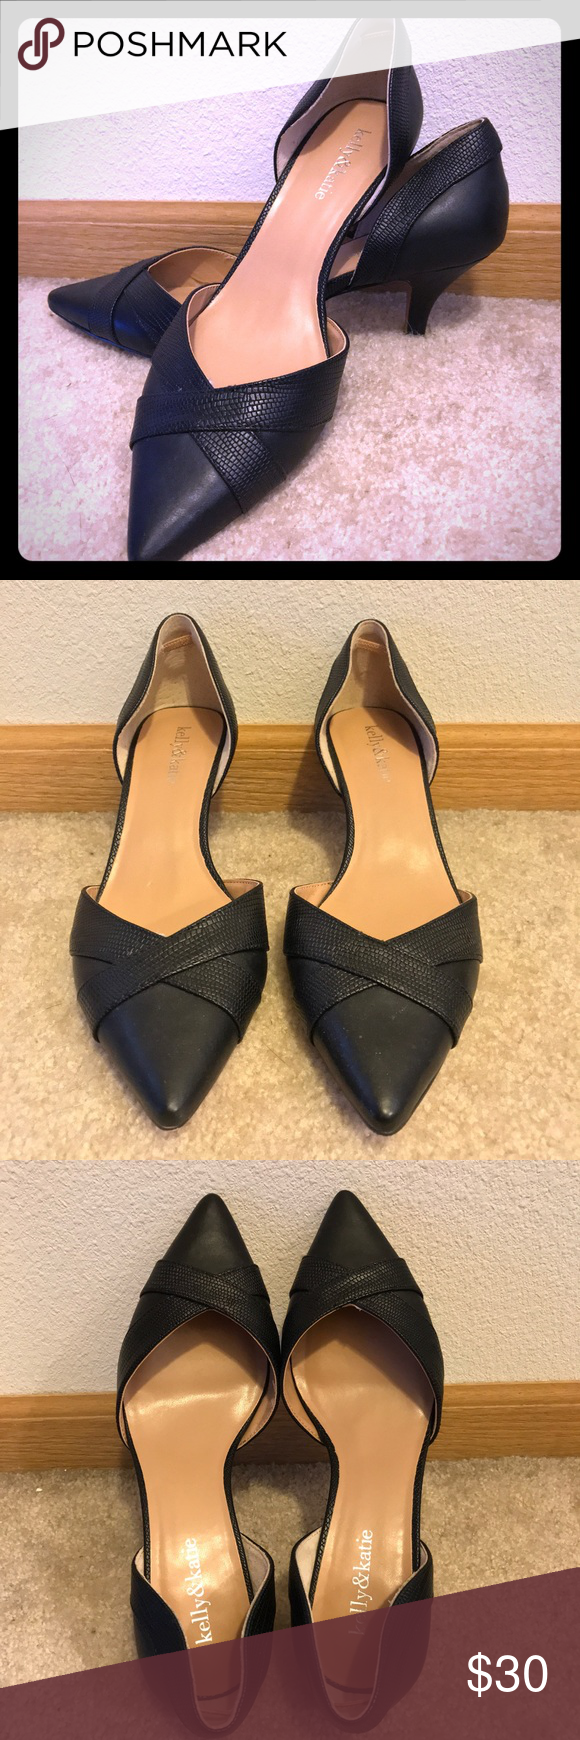 Kelly Katie Kitten Heels Sorry No Trades Paypal Cute And Convenient Pair Of Kelly Katie Kitten Heels Worn F Heel Grips Kelly Katie Kitten Heels